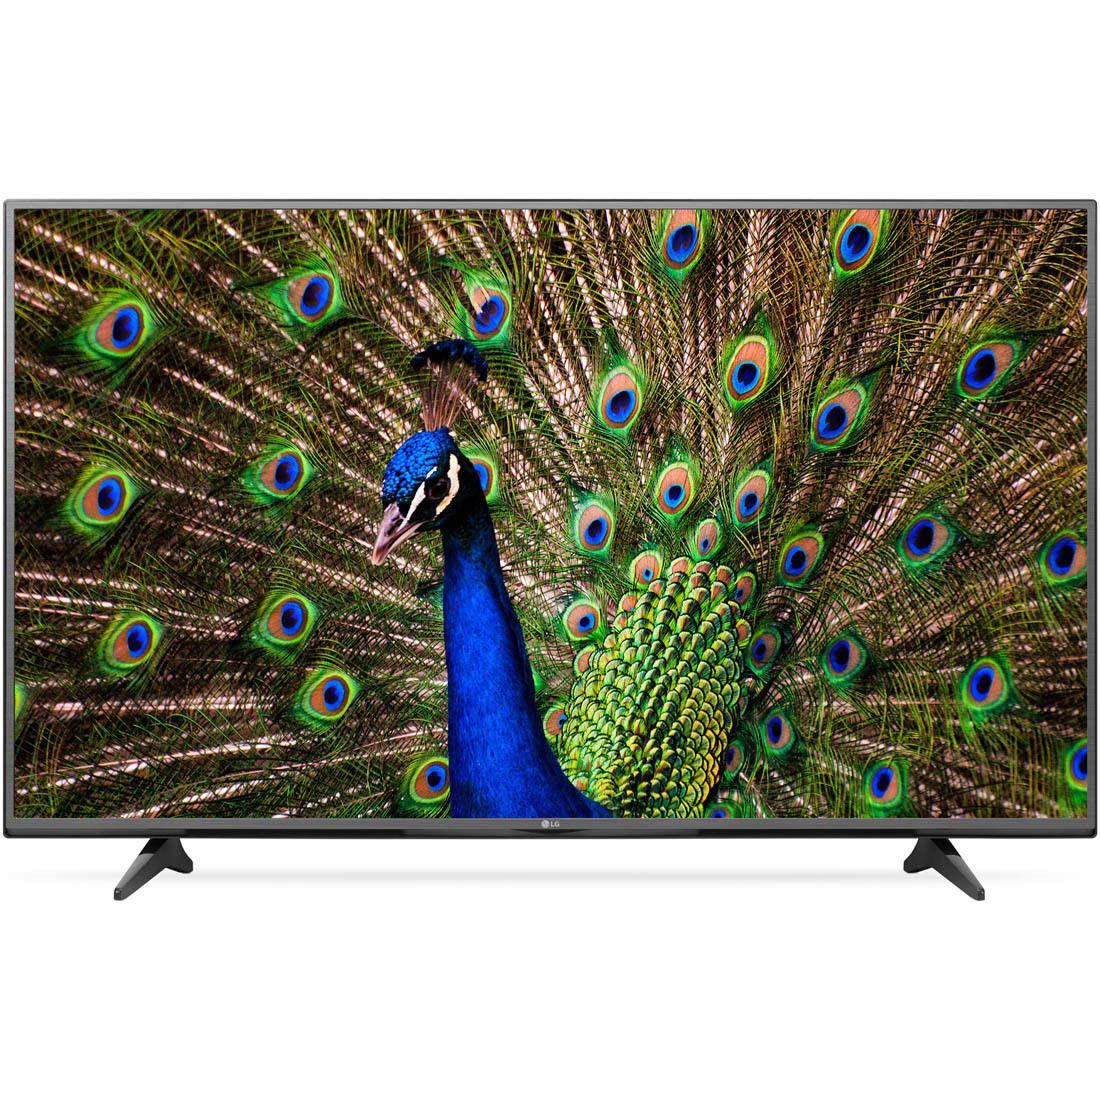 $549.99 + $200 Gift Card! LG 49UH6100 49-Inch 120Hz 4K Ultra HD Smart LED TV